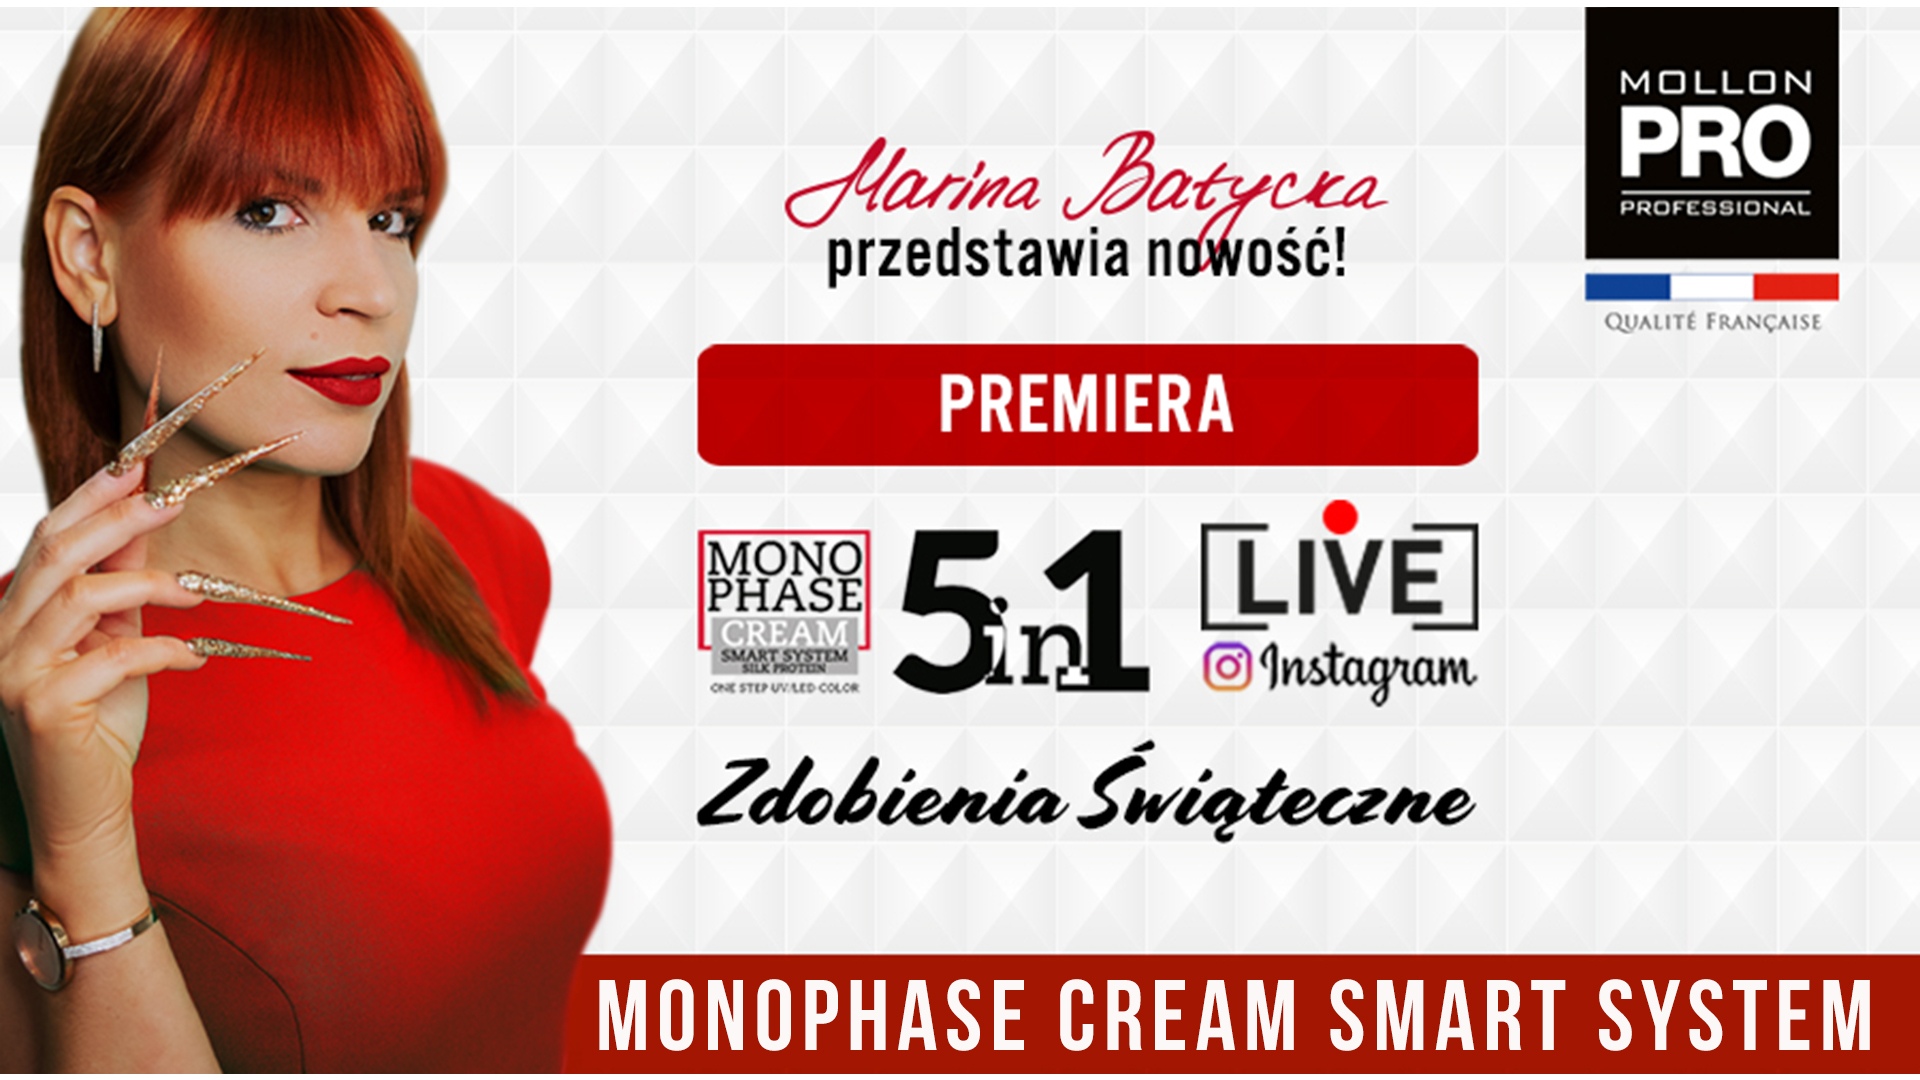 Live Instagram Mollon PRO - Premiera Manophase Cream Smart System